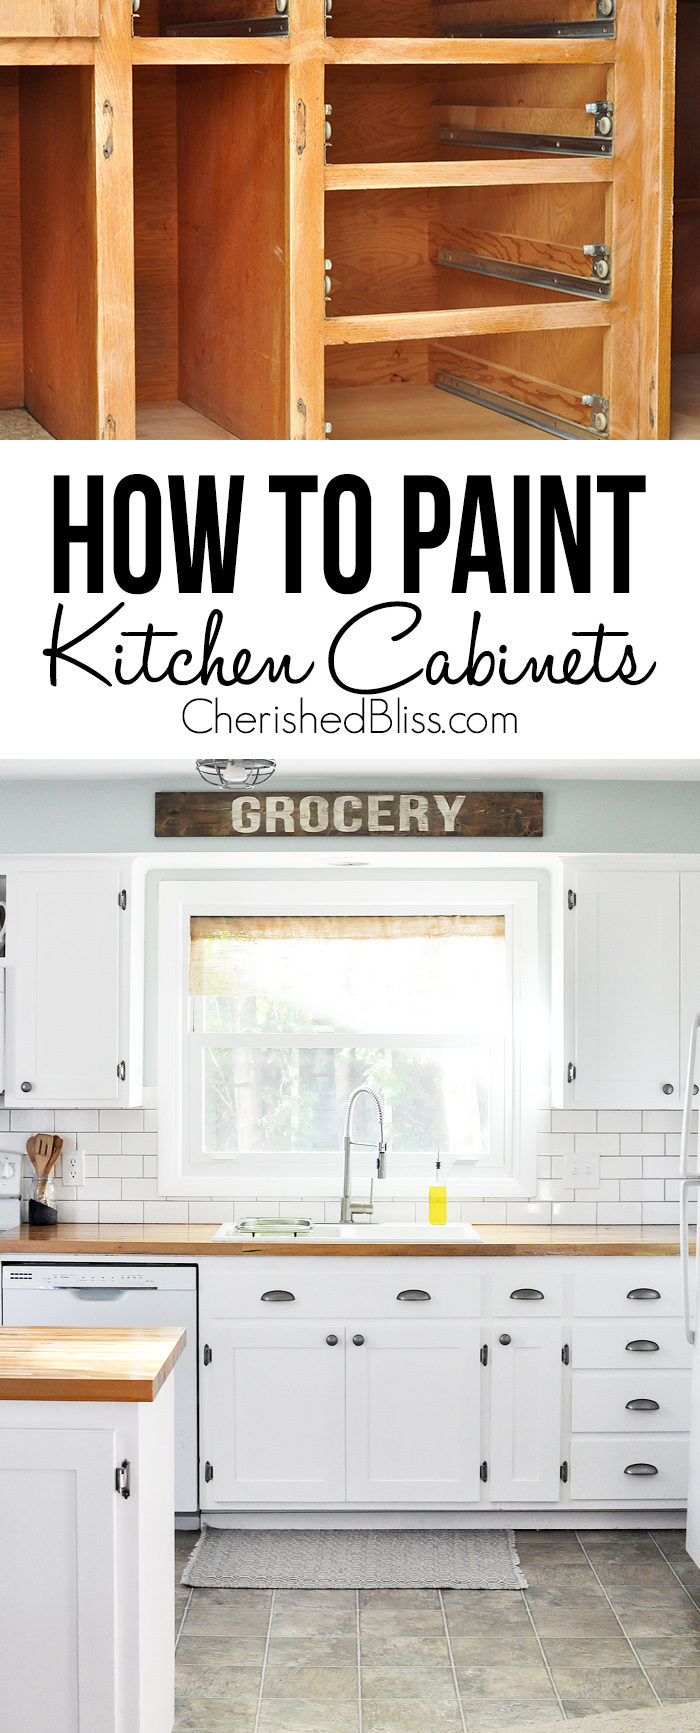 Kitchen Hack: DIY Shaker Style Cabinets - Cherished Bliss